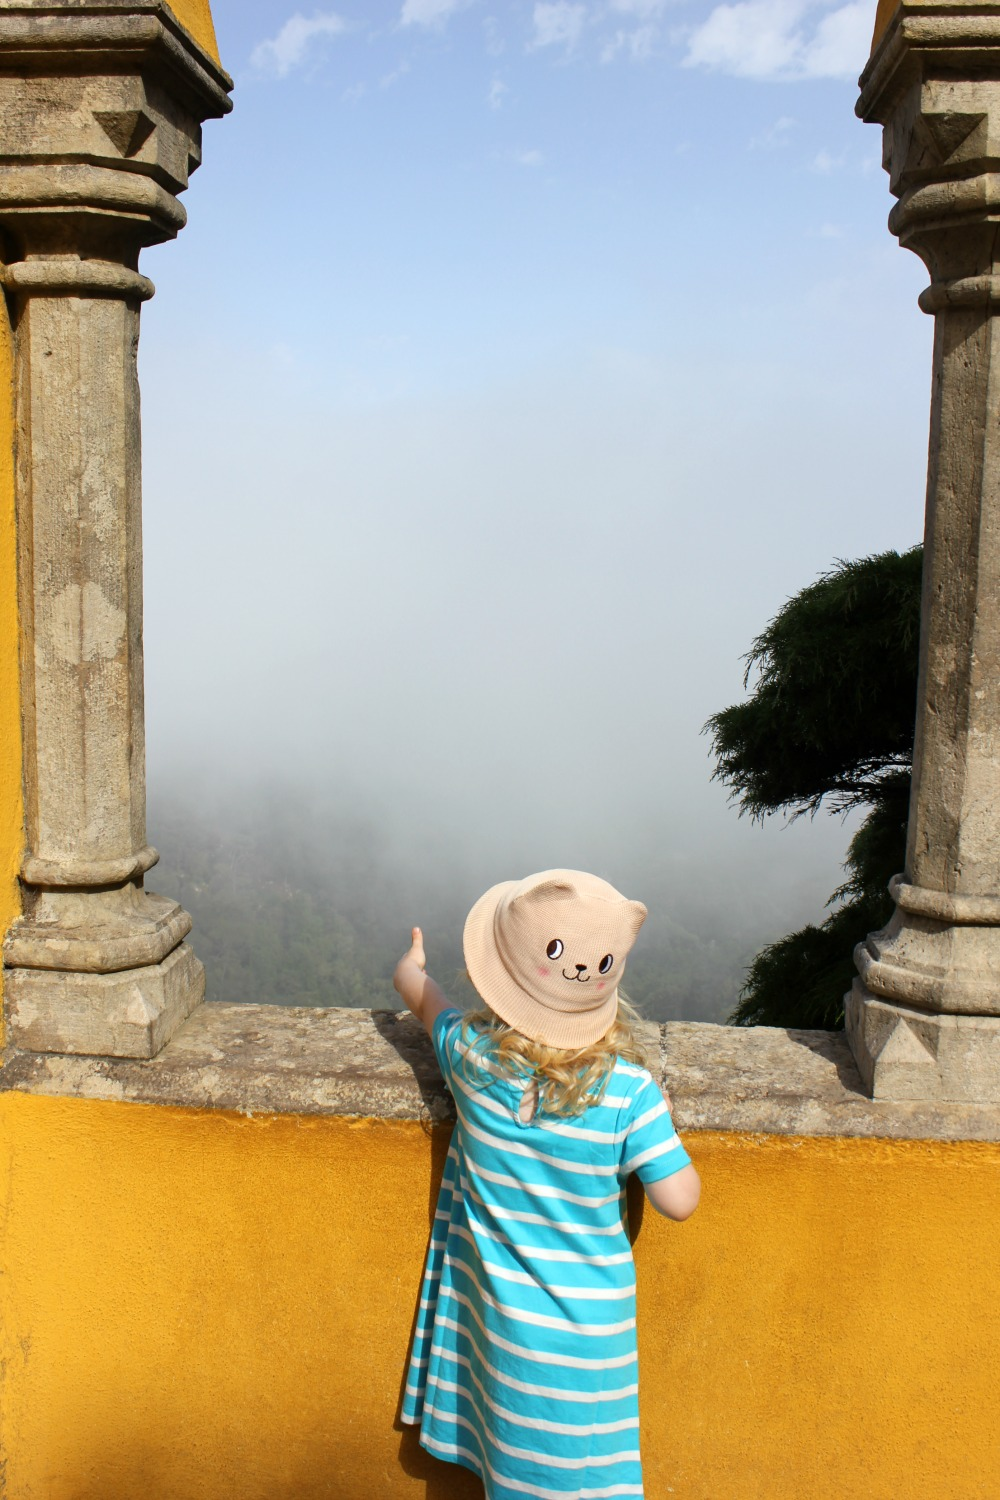 A girl looks out between the pillars and yellow painted walls of the Pena Palace at Sintra onto a misty view - one of my favourite memories of the country and among Portugal's most unusual attractions